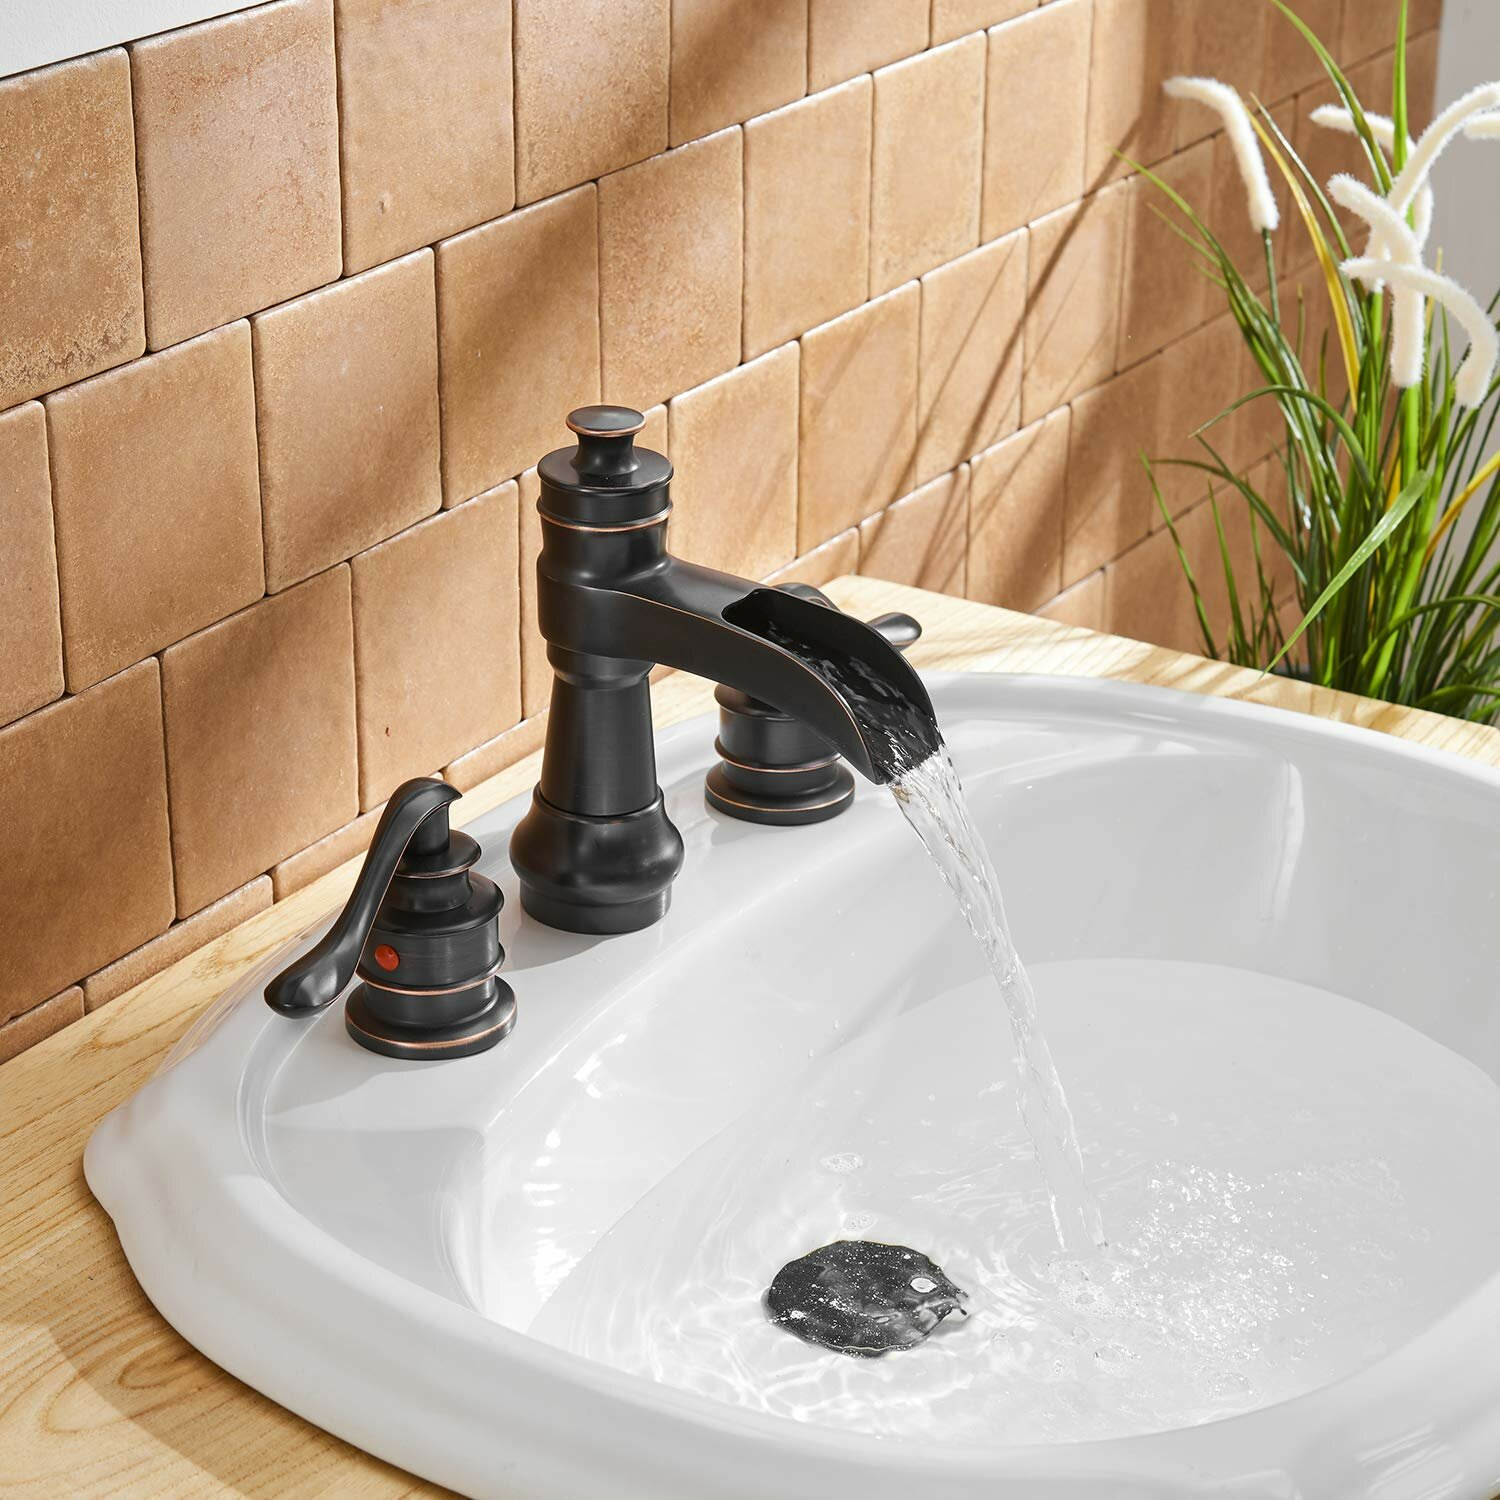 BWE Commercial Widespread Waterfall 3 Holes Oil Rubbed Bronze Bathroom Faucet